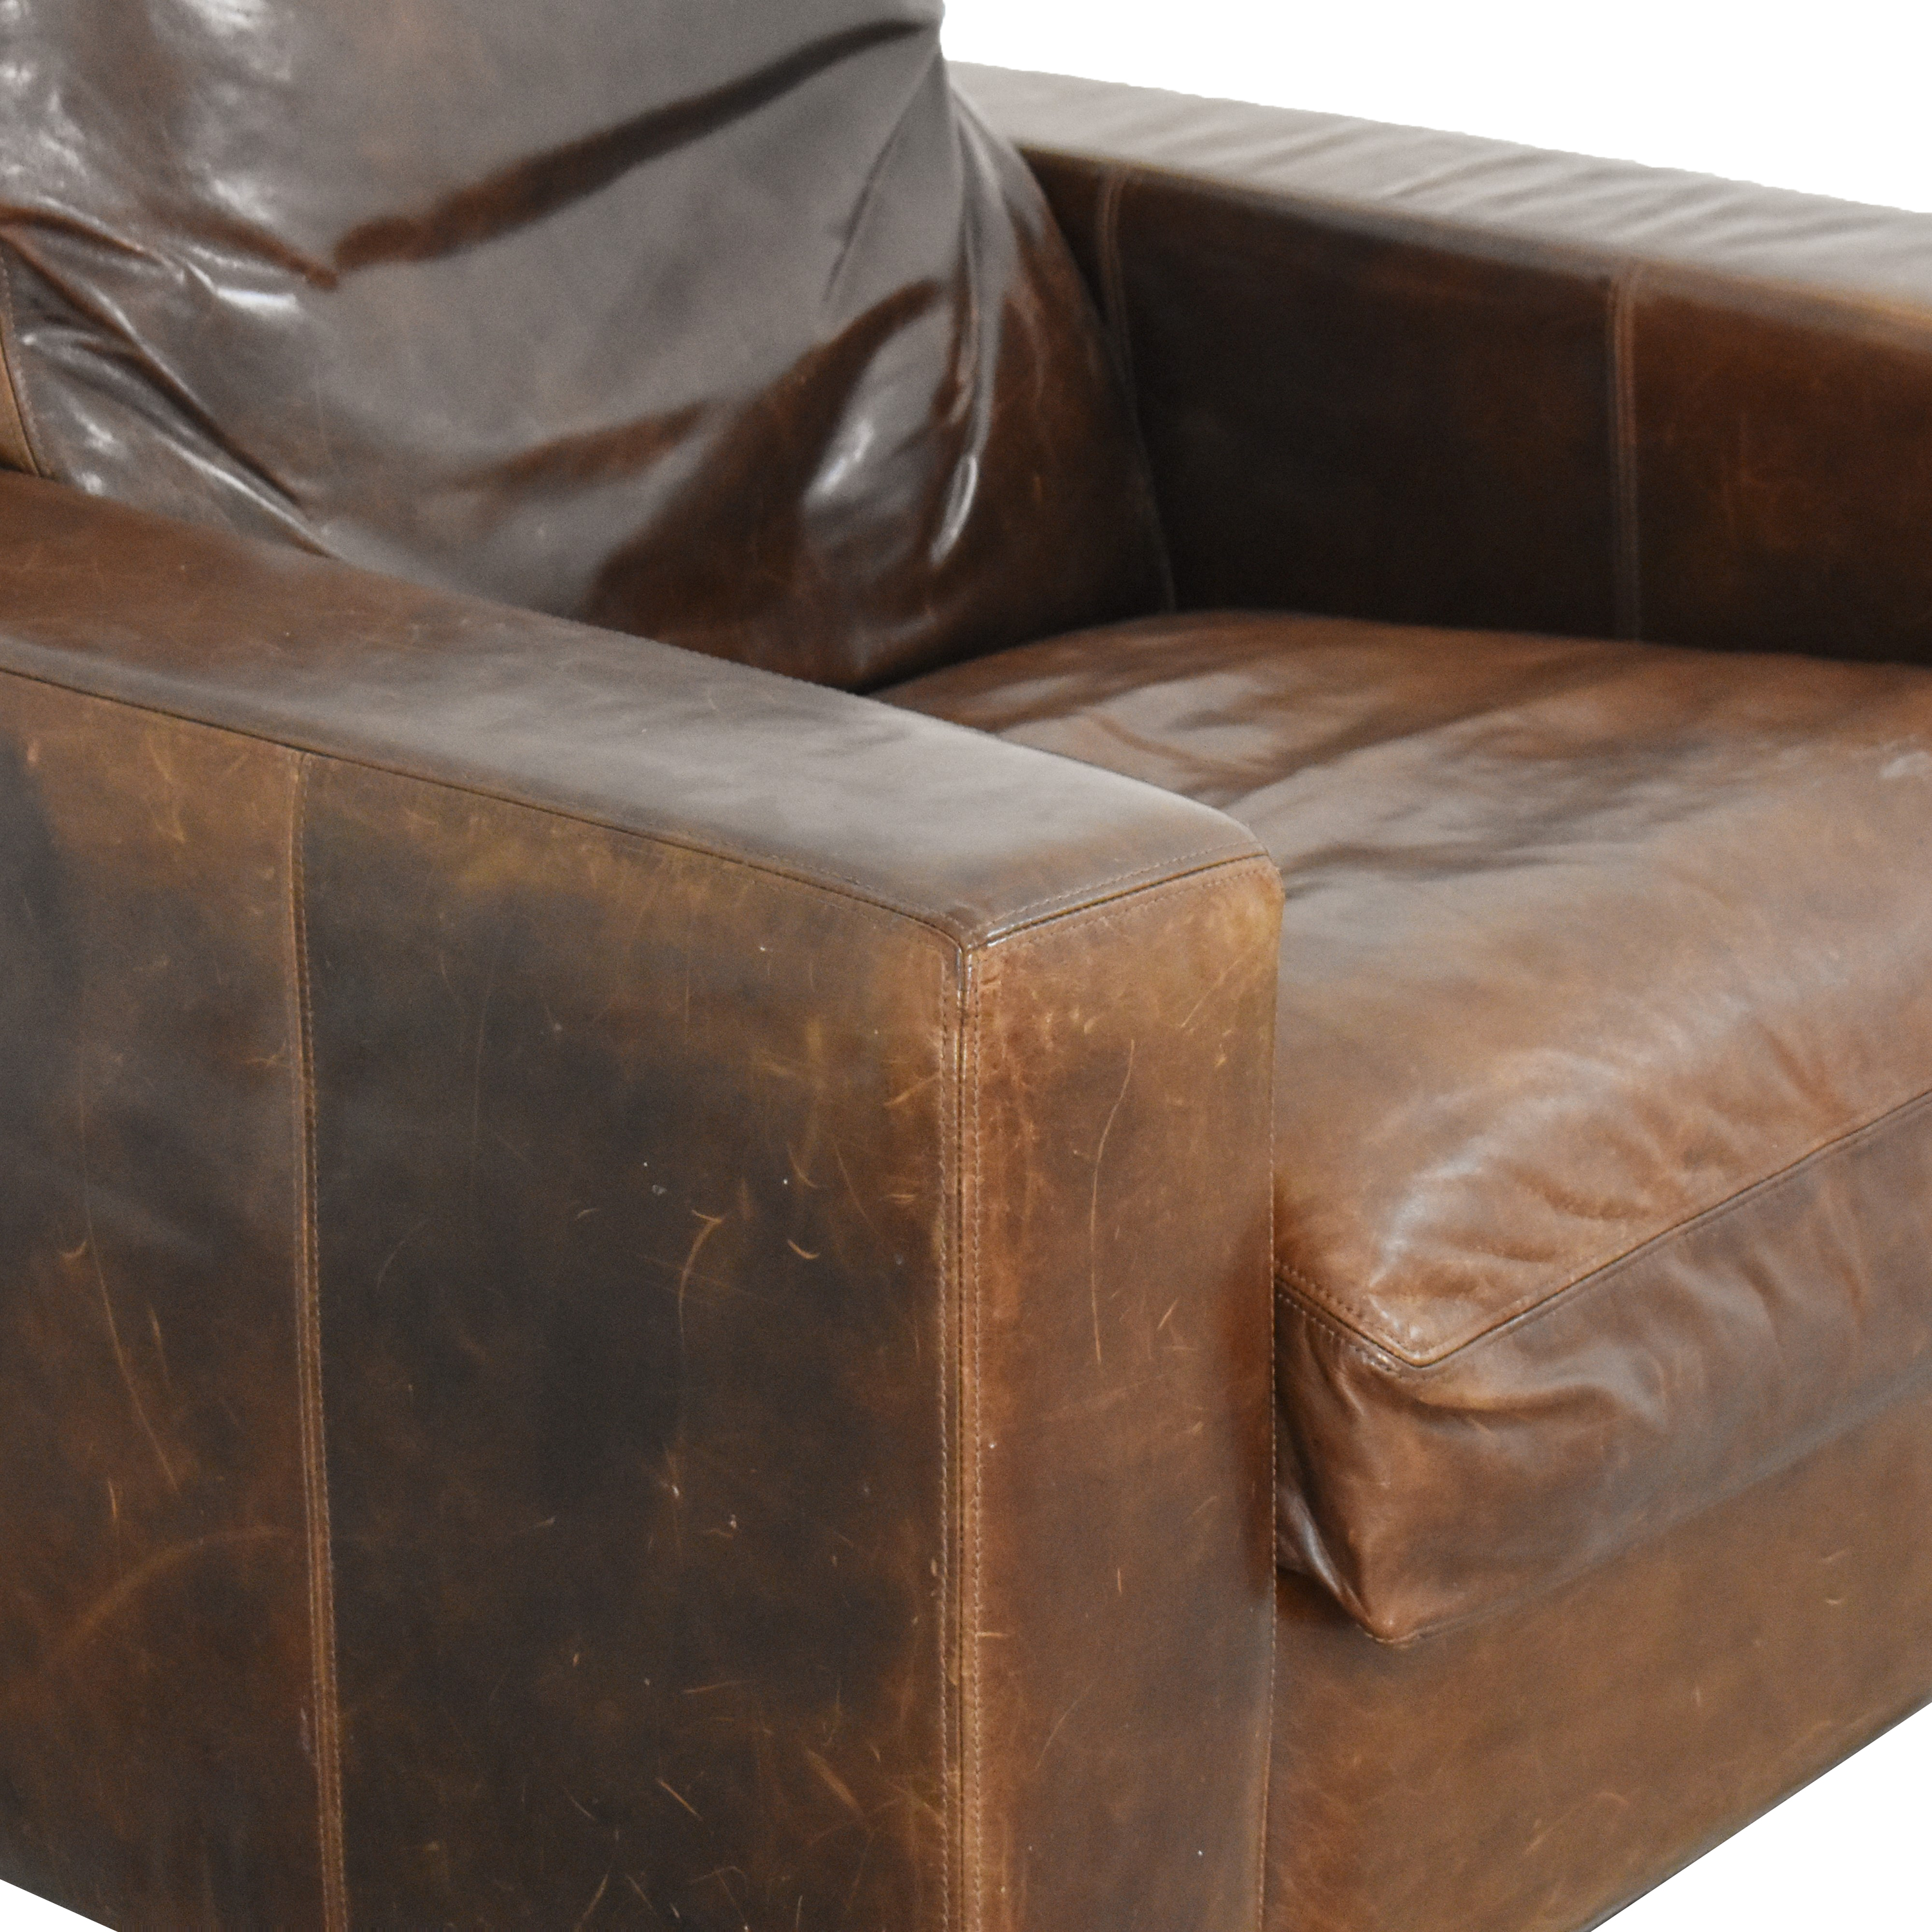 Restoration Hardware Restoration Hardware Maxwell Recliner second hand